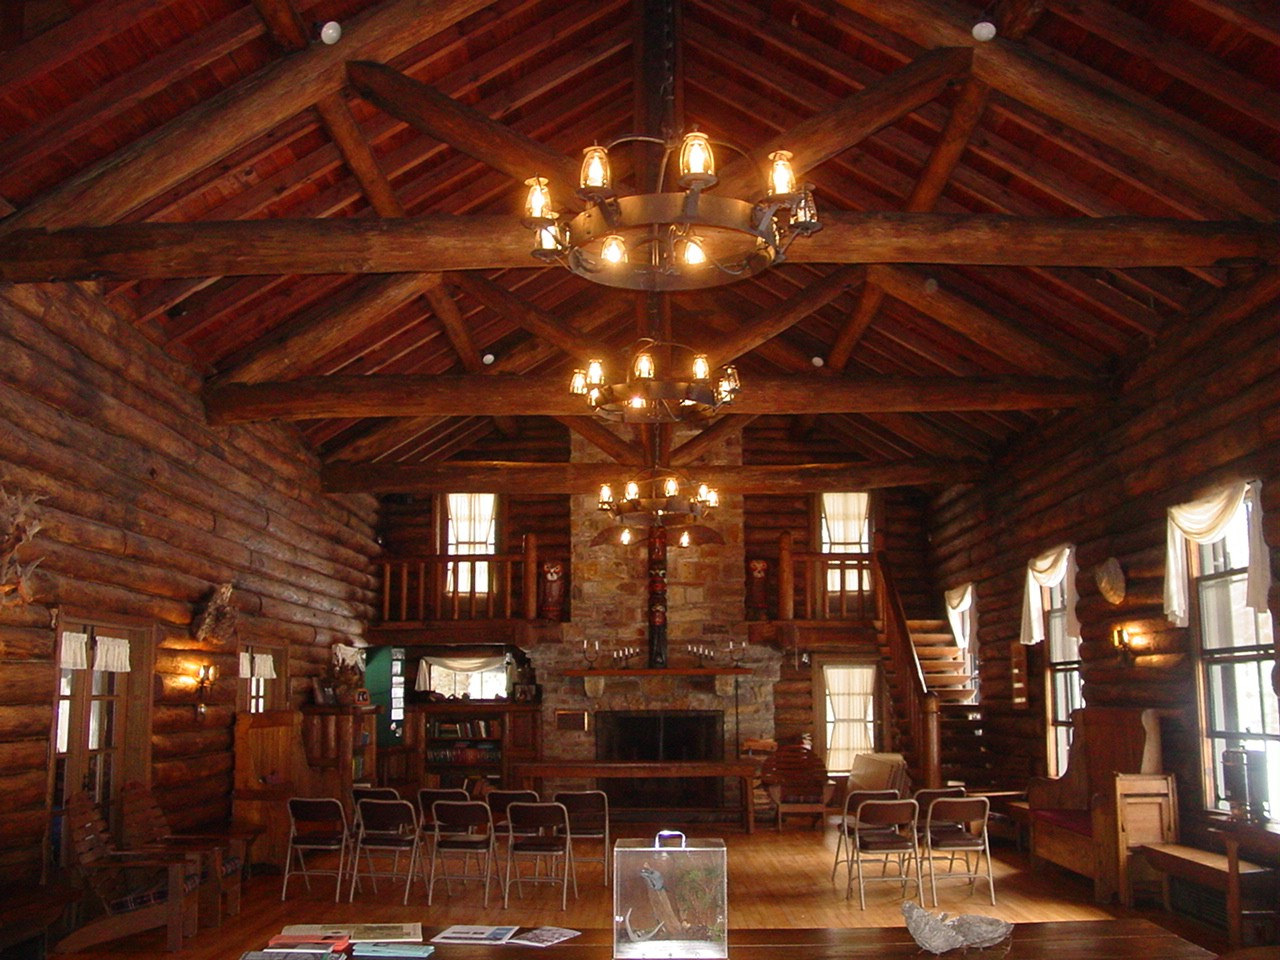 SPEND FRIDAYS AT THE LODGE WITH THE FIRESIDE CONCERT SERIES